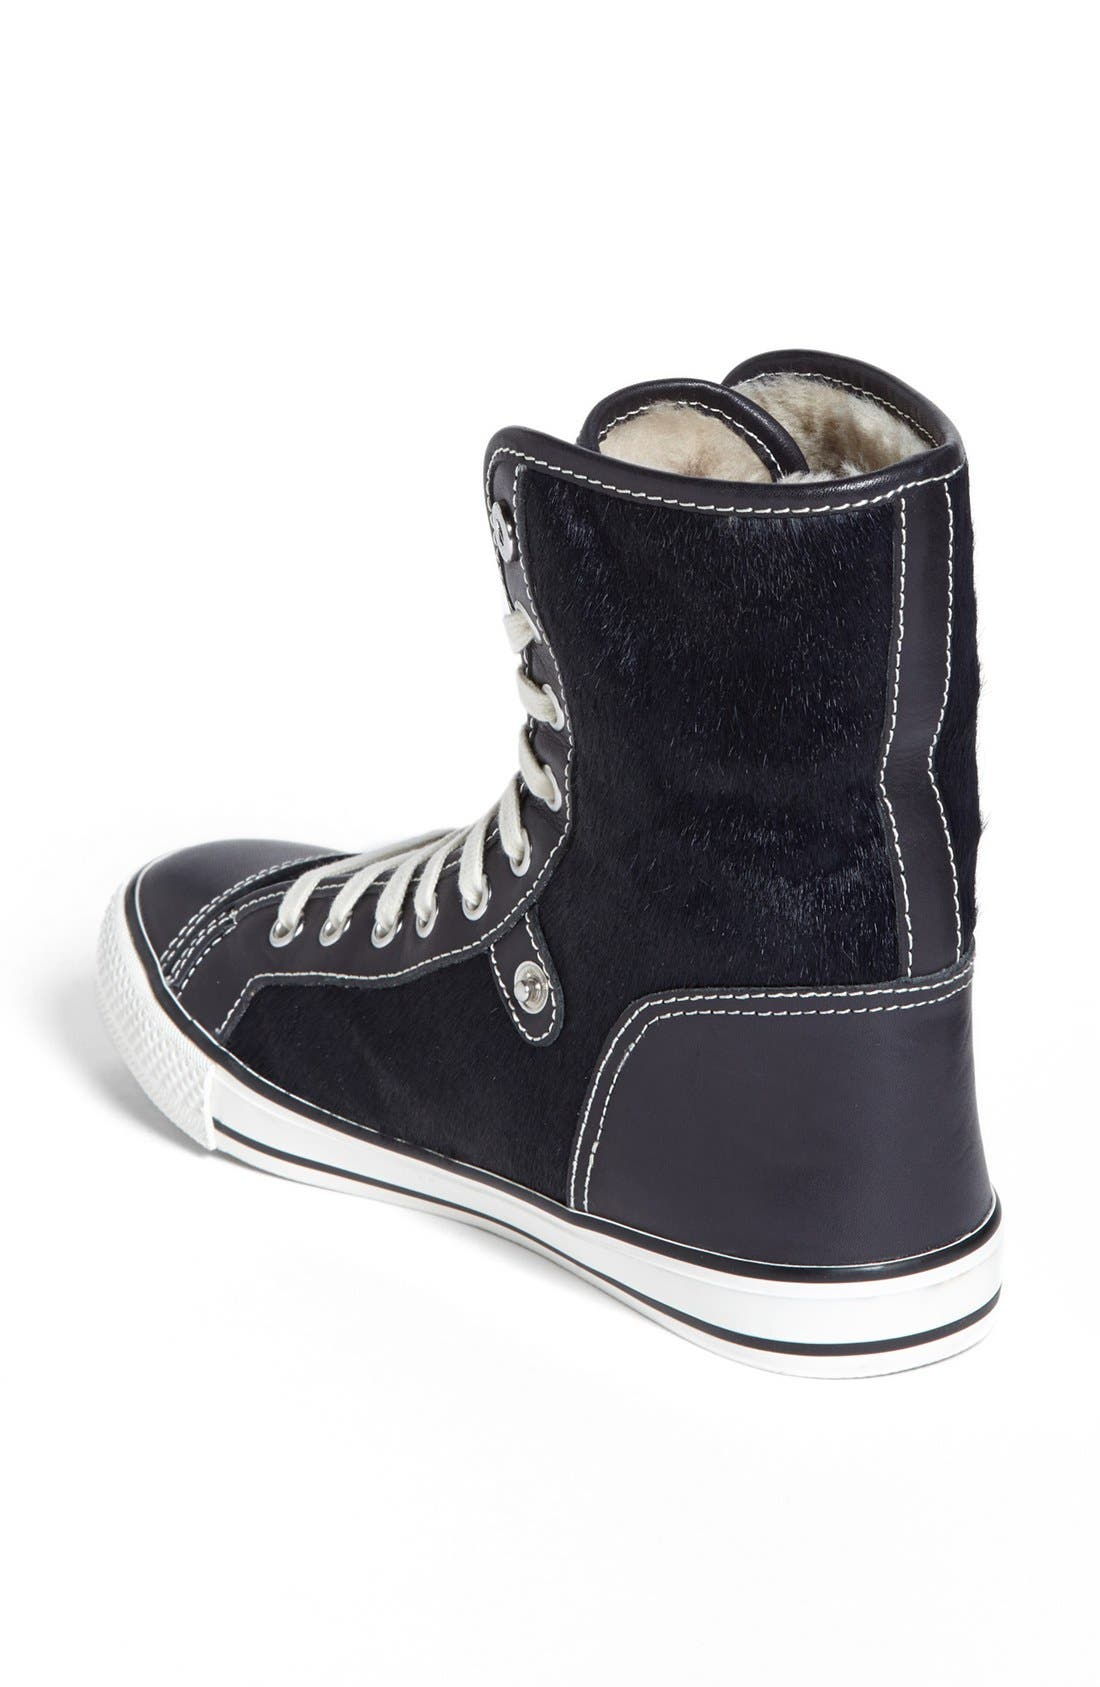 Alternate Image 2  - Tory Burch 'Benjamin' High Top Sneaker